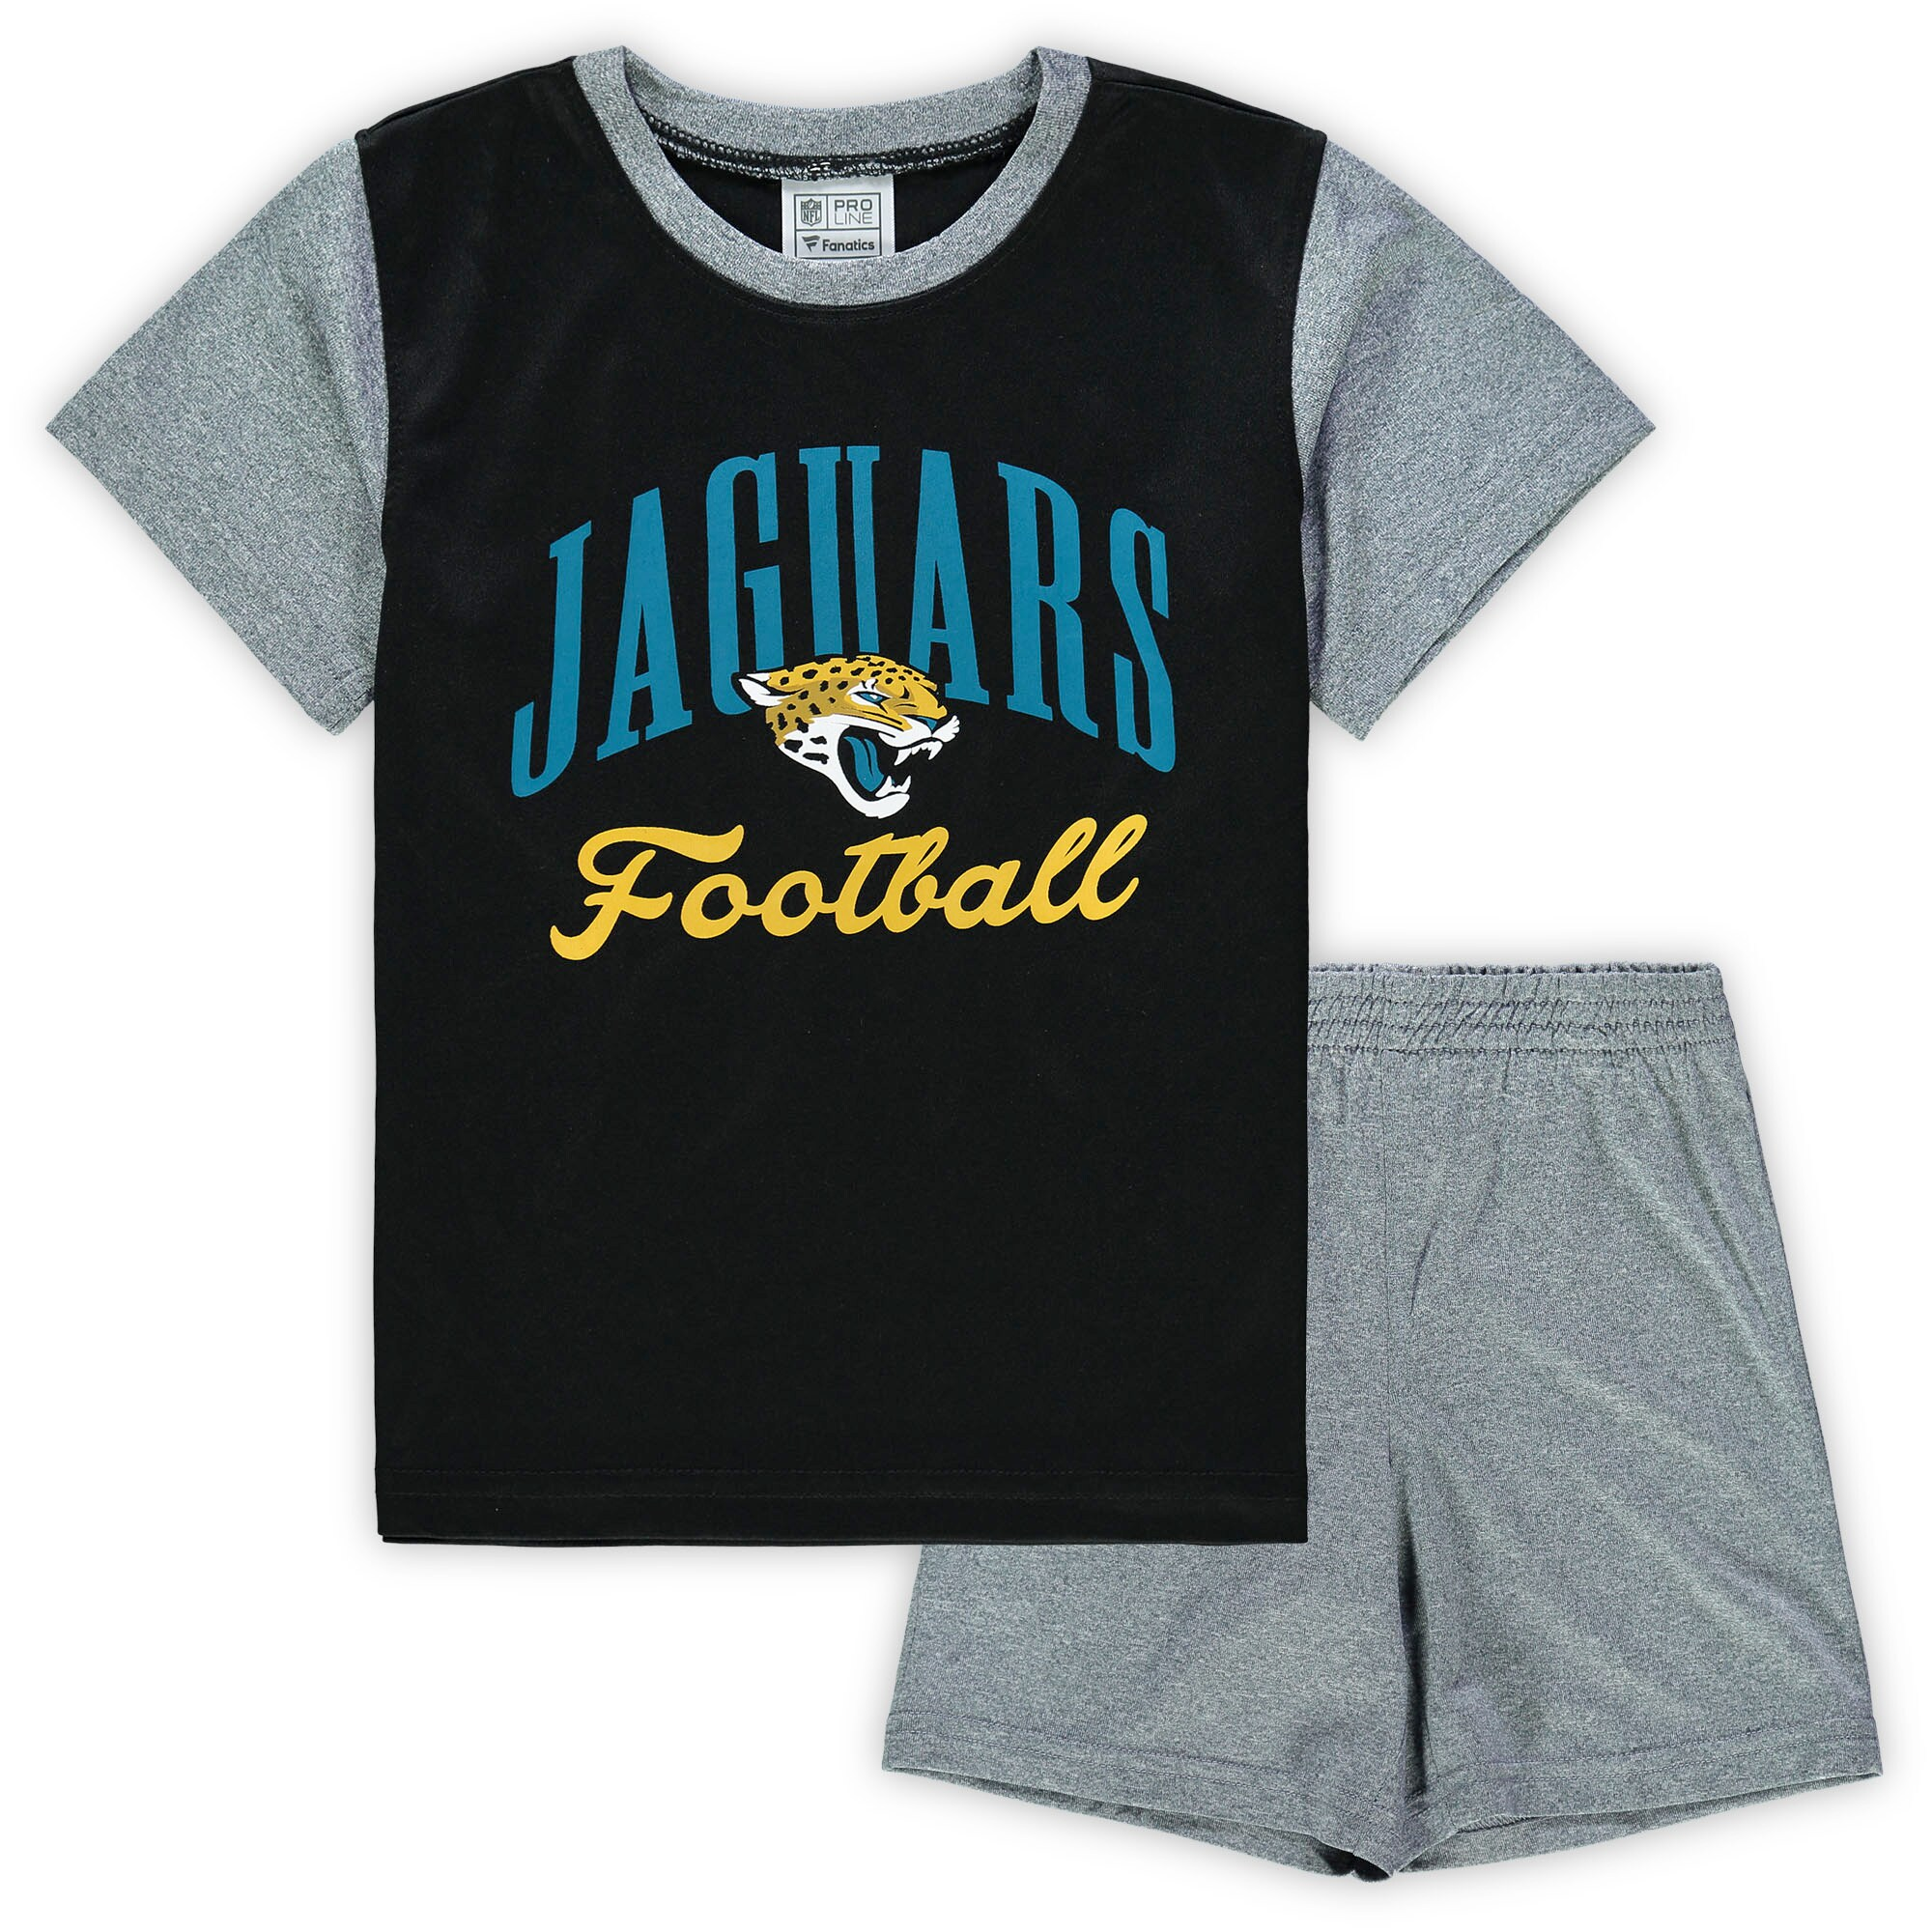 Jacksonville Jaguars NFL Pro Line by Fanatics Branded Toddler Two-Piece Victory Script T-Shirt and Short Set - Black/Heathered Gray